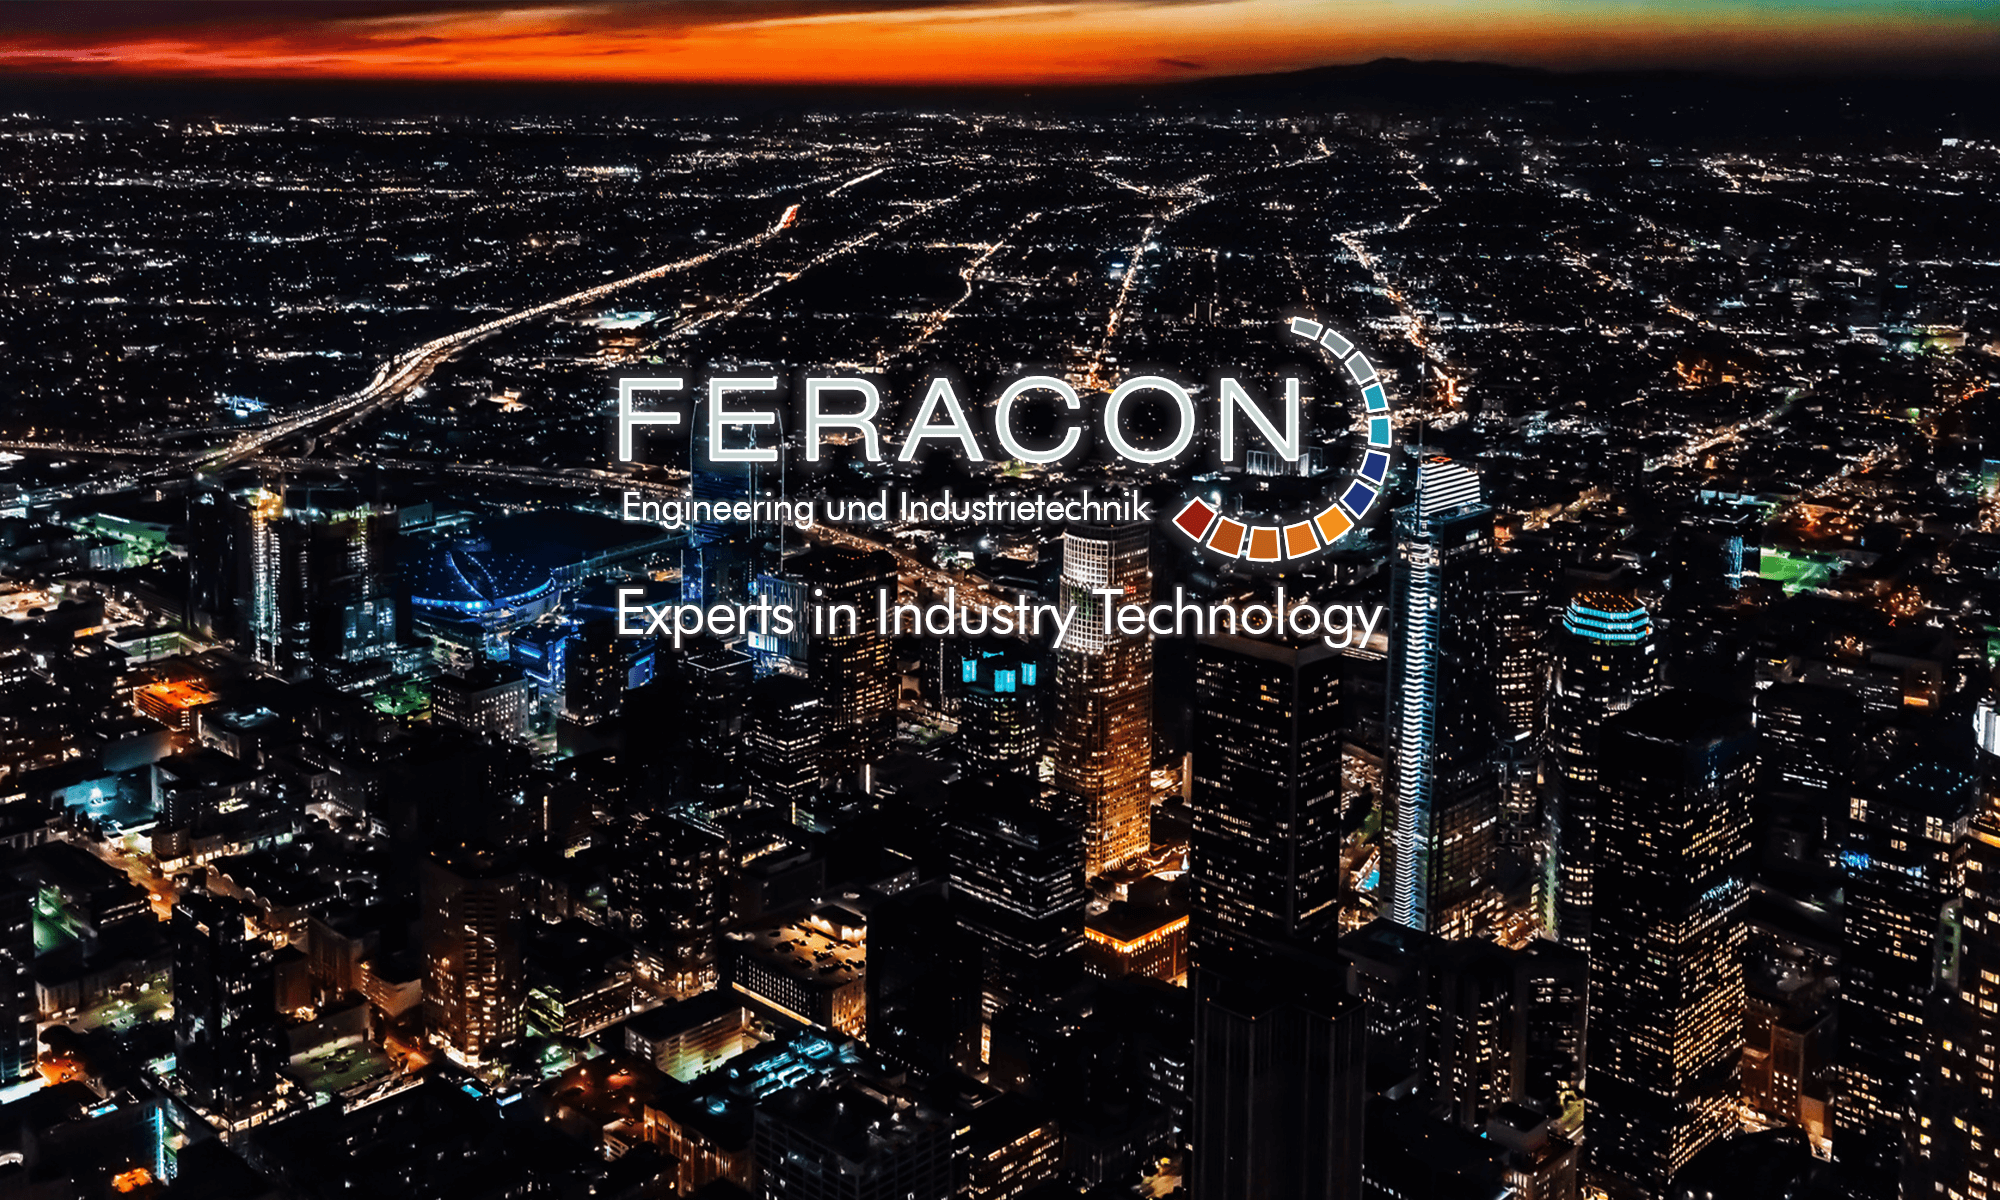 FERACON GmbH - Engineering und Industrietechnik